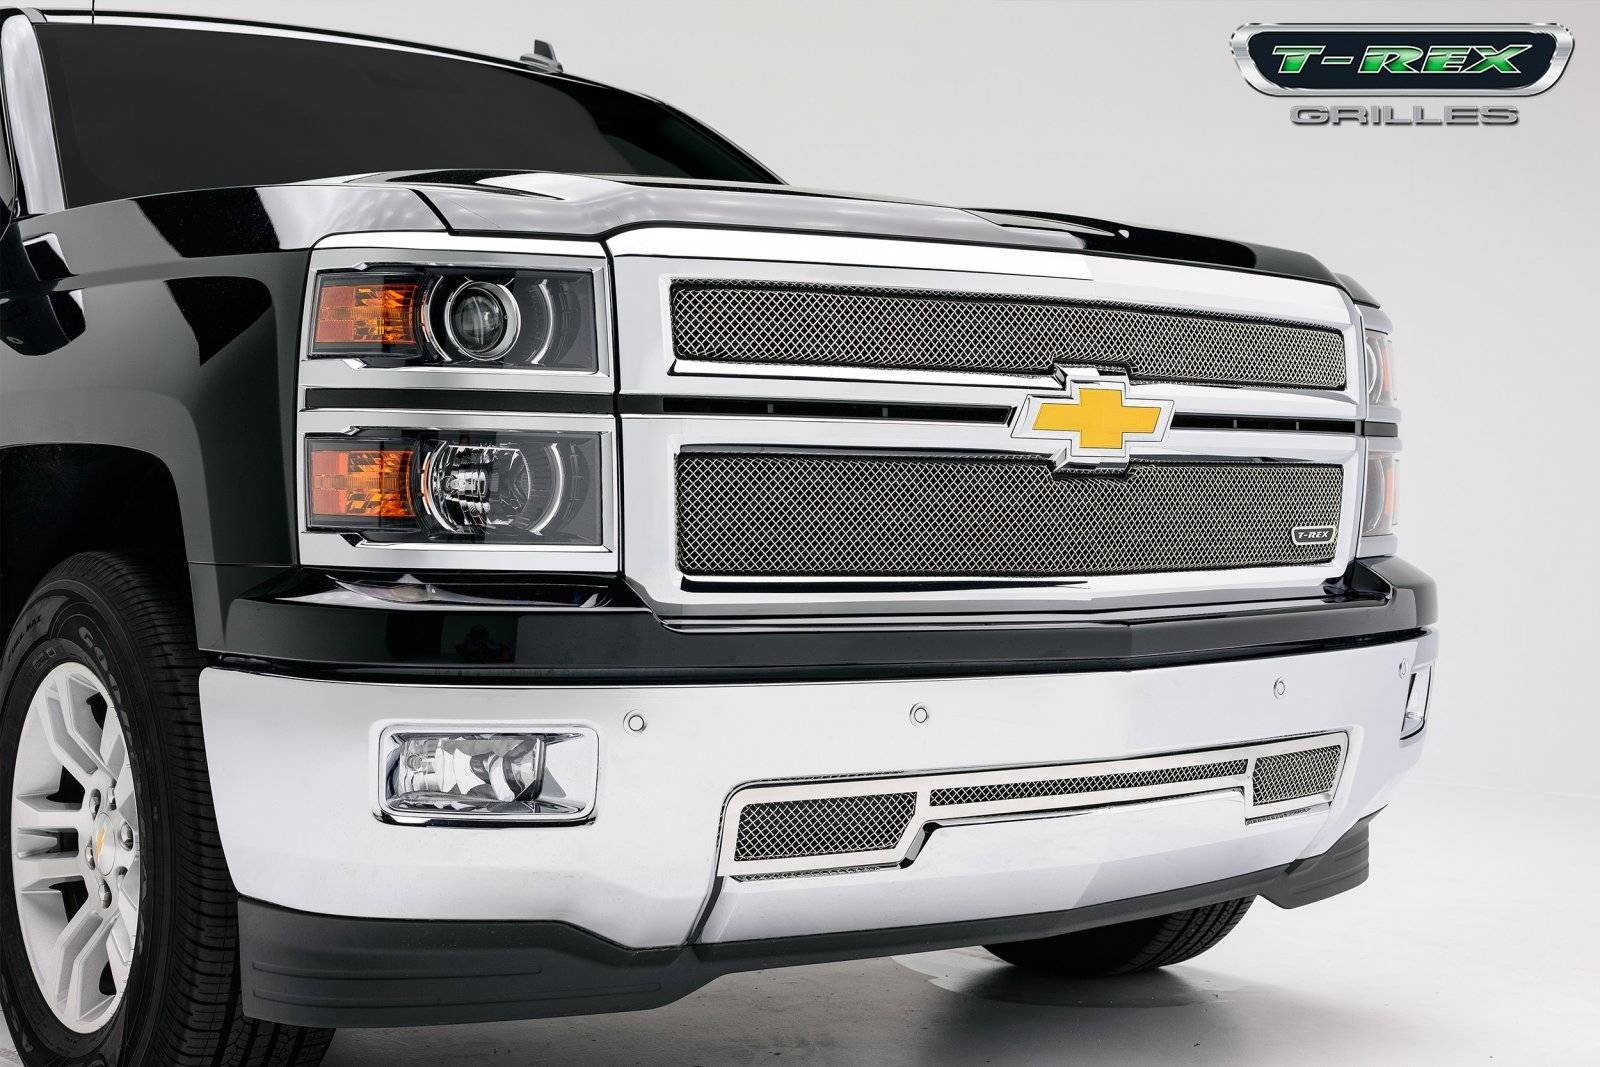 T-REX Grilles - Chevrolet Silverado Z71 Sport Series Formed Mesh Grille - Stainless Steel - Triple Chrome Plated - 2 Pc - Pt # 44120